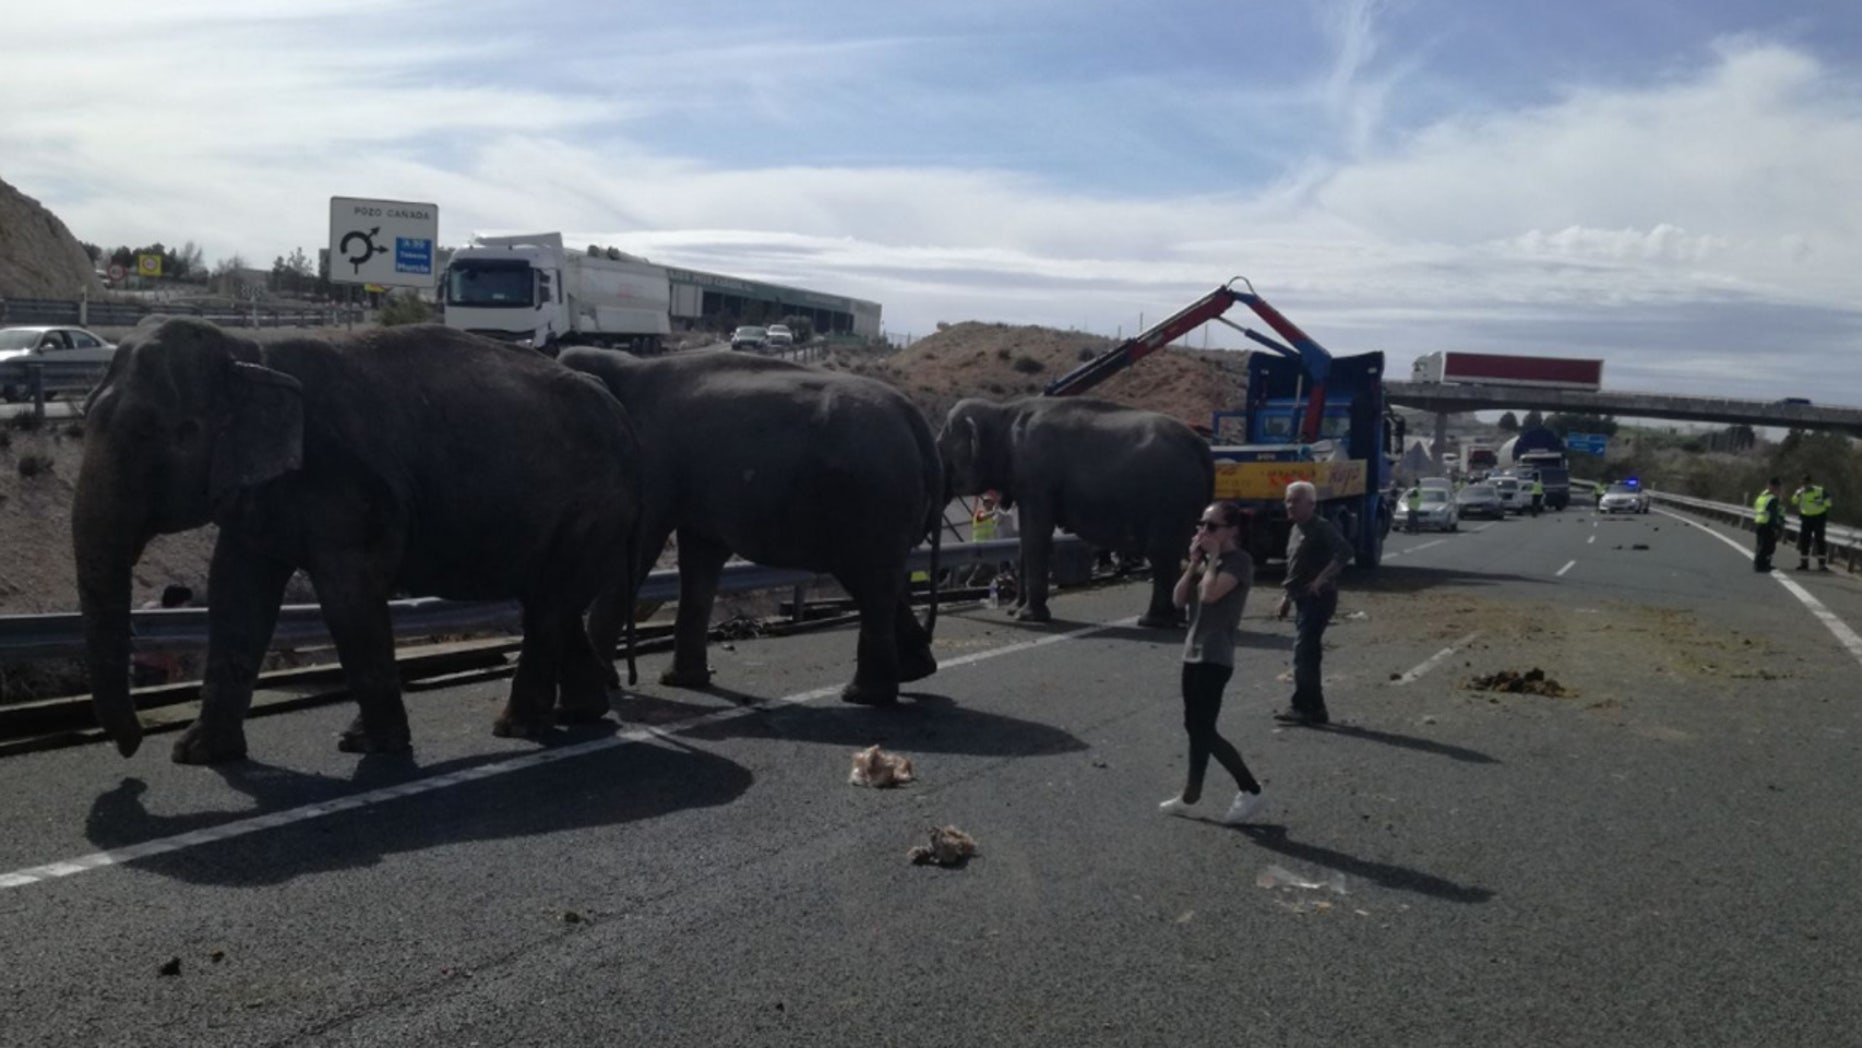 One elephant was killed and two others were injured after a truck carrying five pachyderms crashed on a highway.